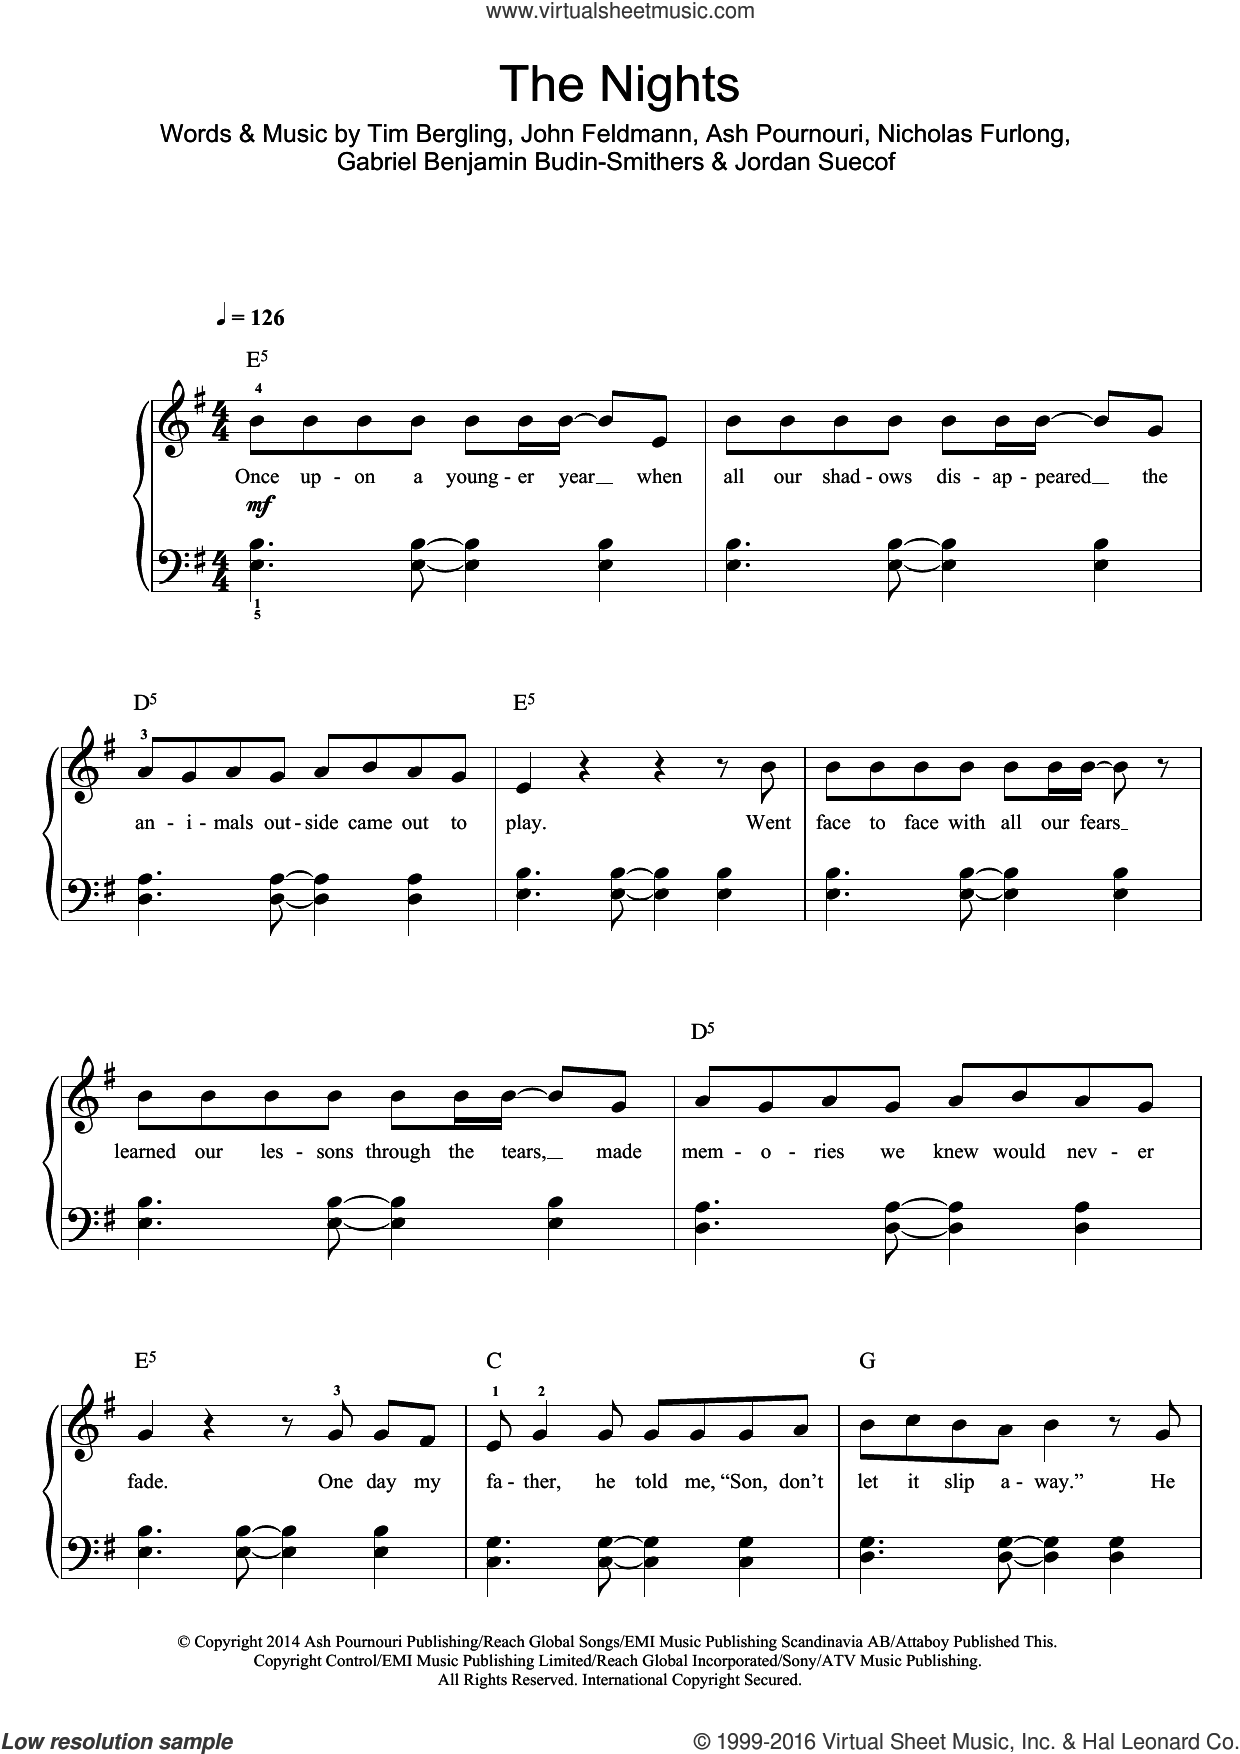 The Nights sheet music for voice, piano or guitar by Tim Bergling, Avicii, Ash Pournouri, John Feldmann and Nicholas